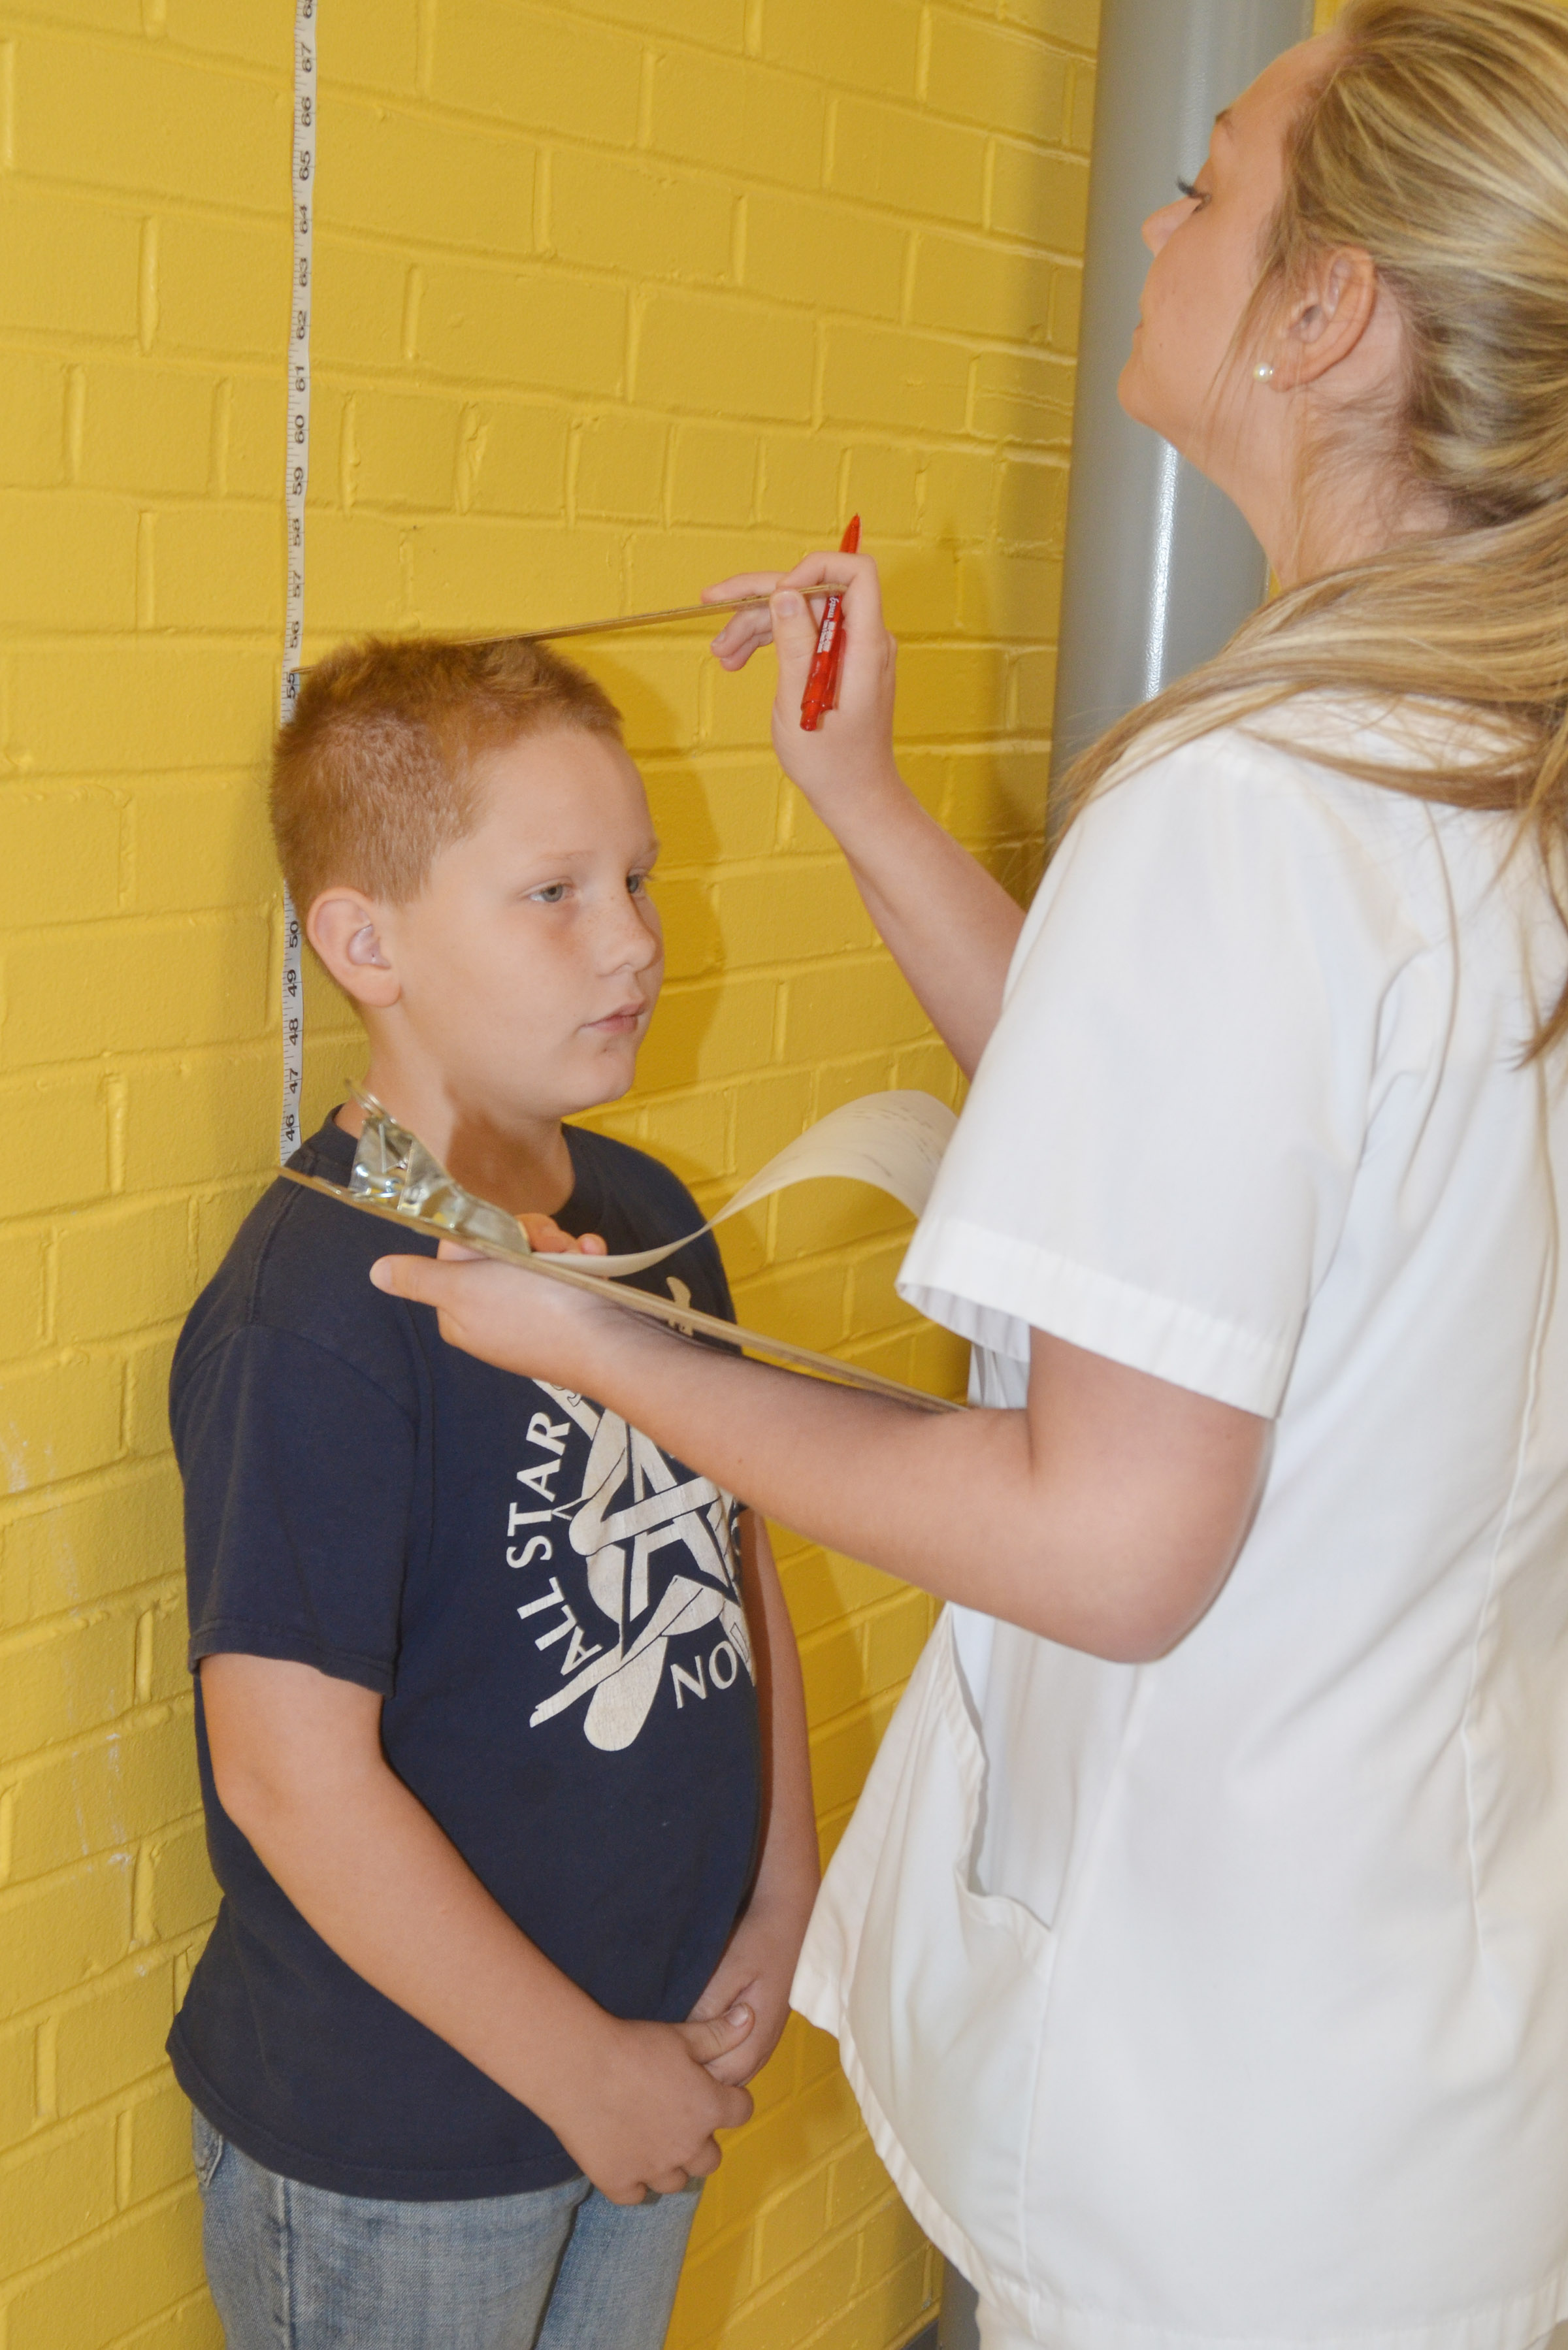 CES fourth-grader Isaiah Jeffries has his height measured by Campbellsville University nursing student Amelia Miller.